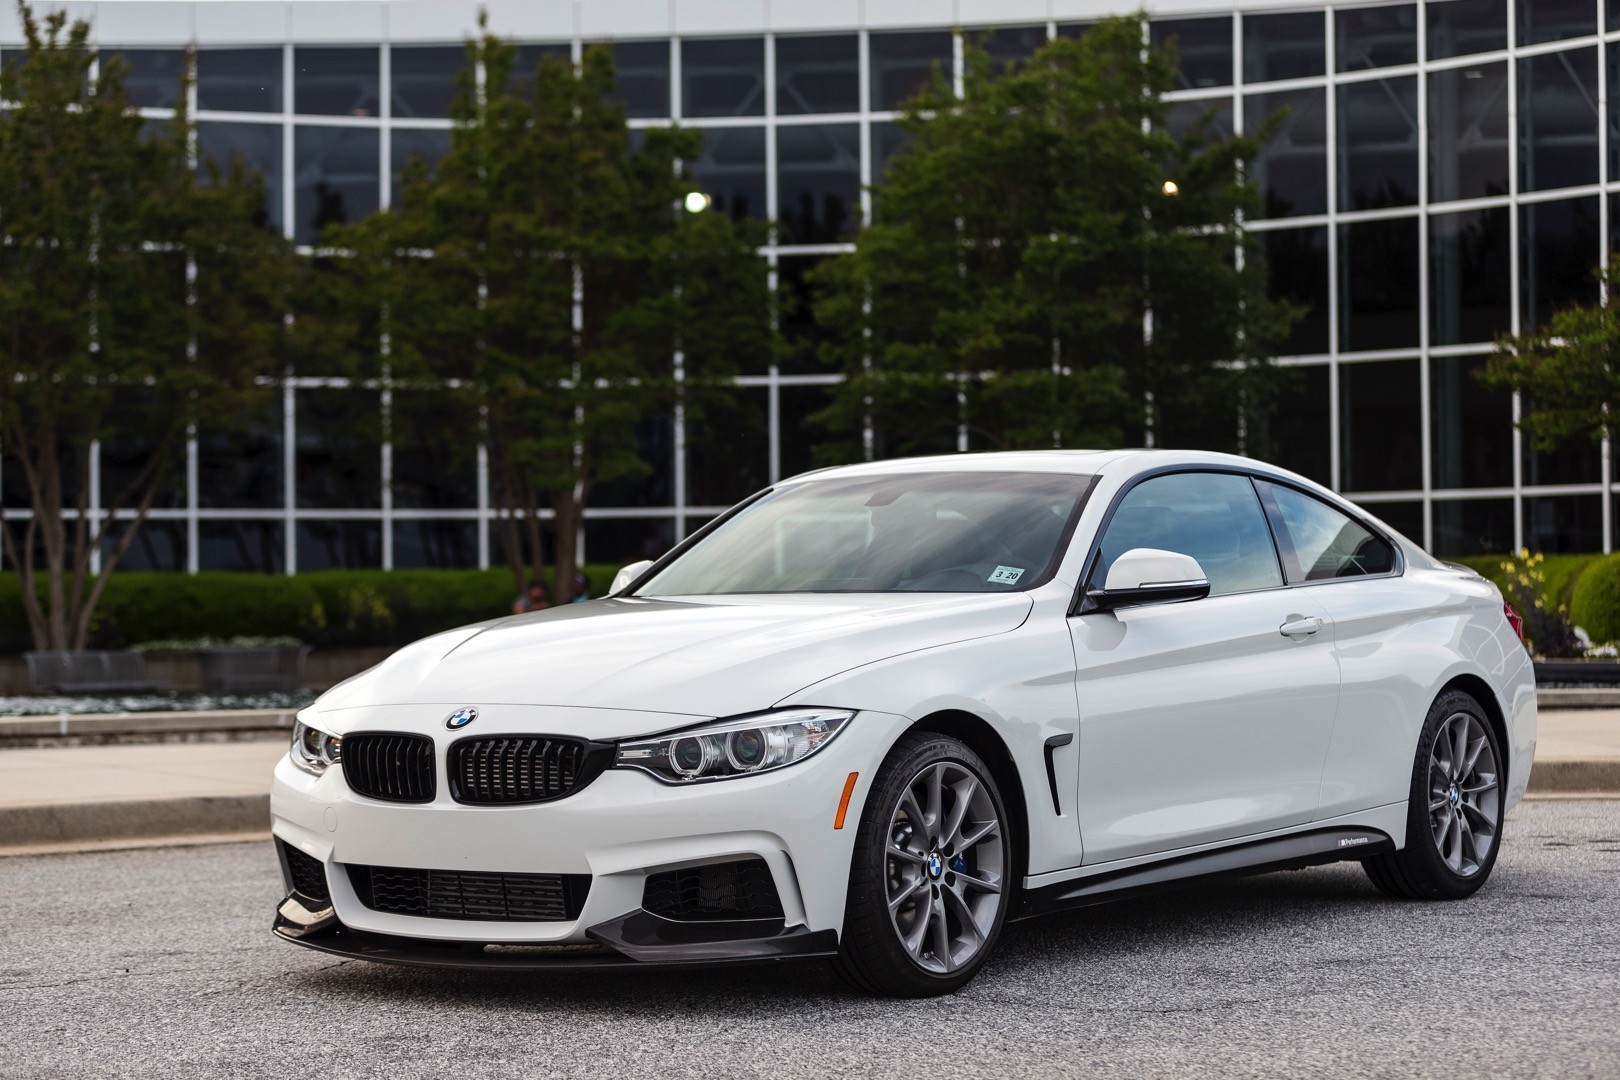 bmw has unveiled a - photo #12